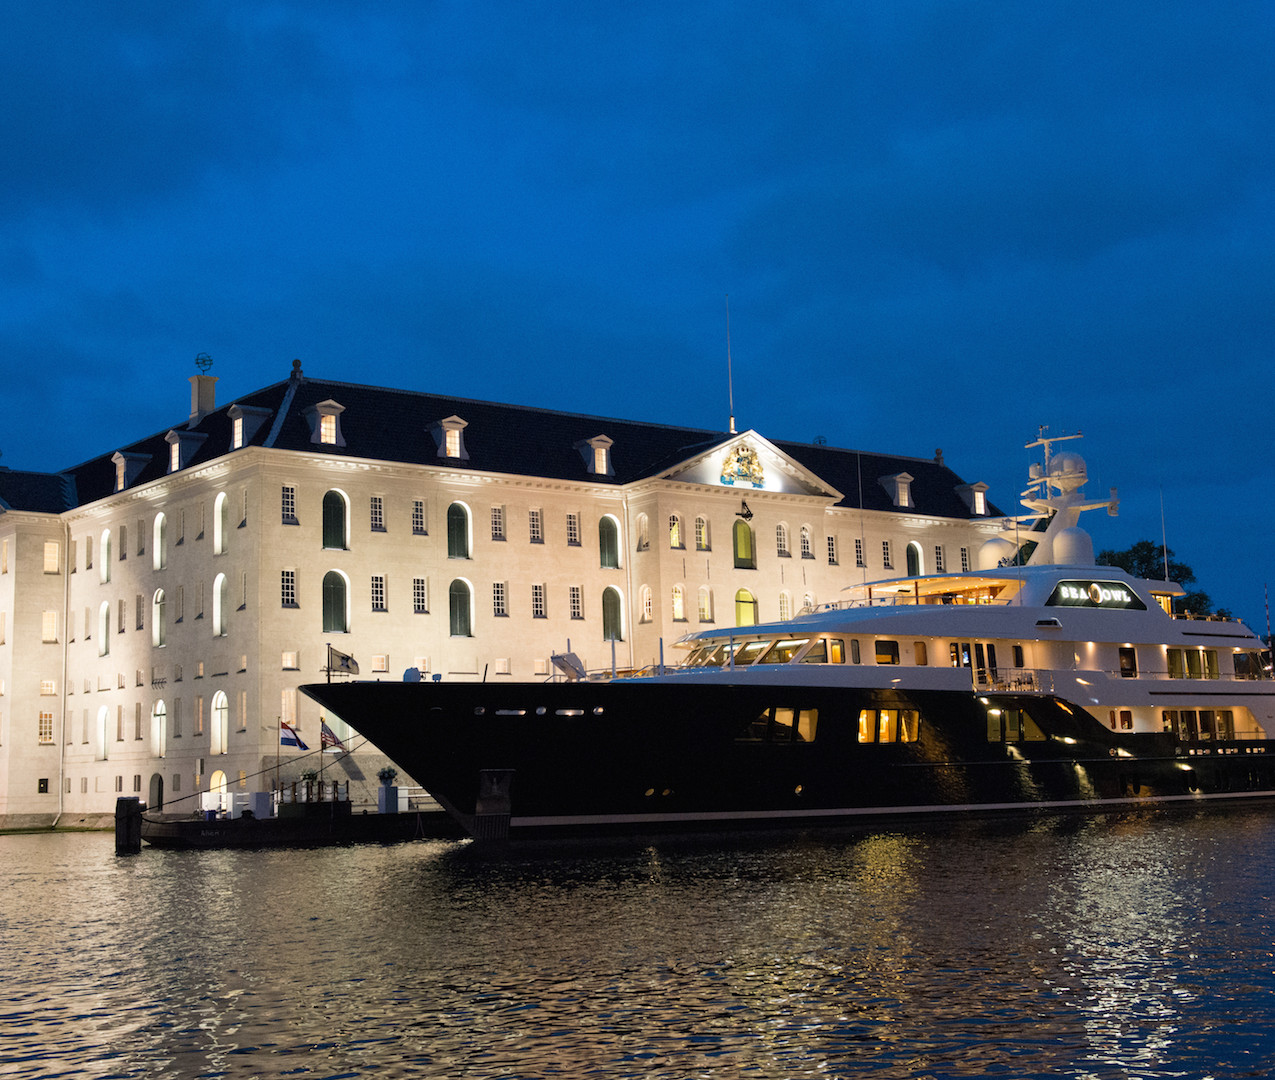 Feadship - Chauffeursdiensten-DB-The-Mobility-Group-bij-Feadship-Sea-Owl-at-night-1